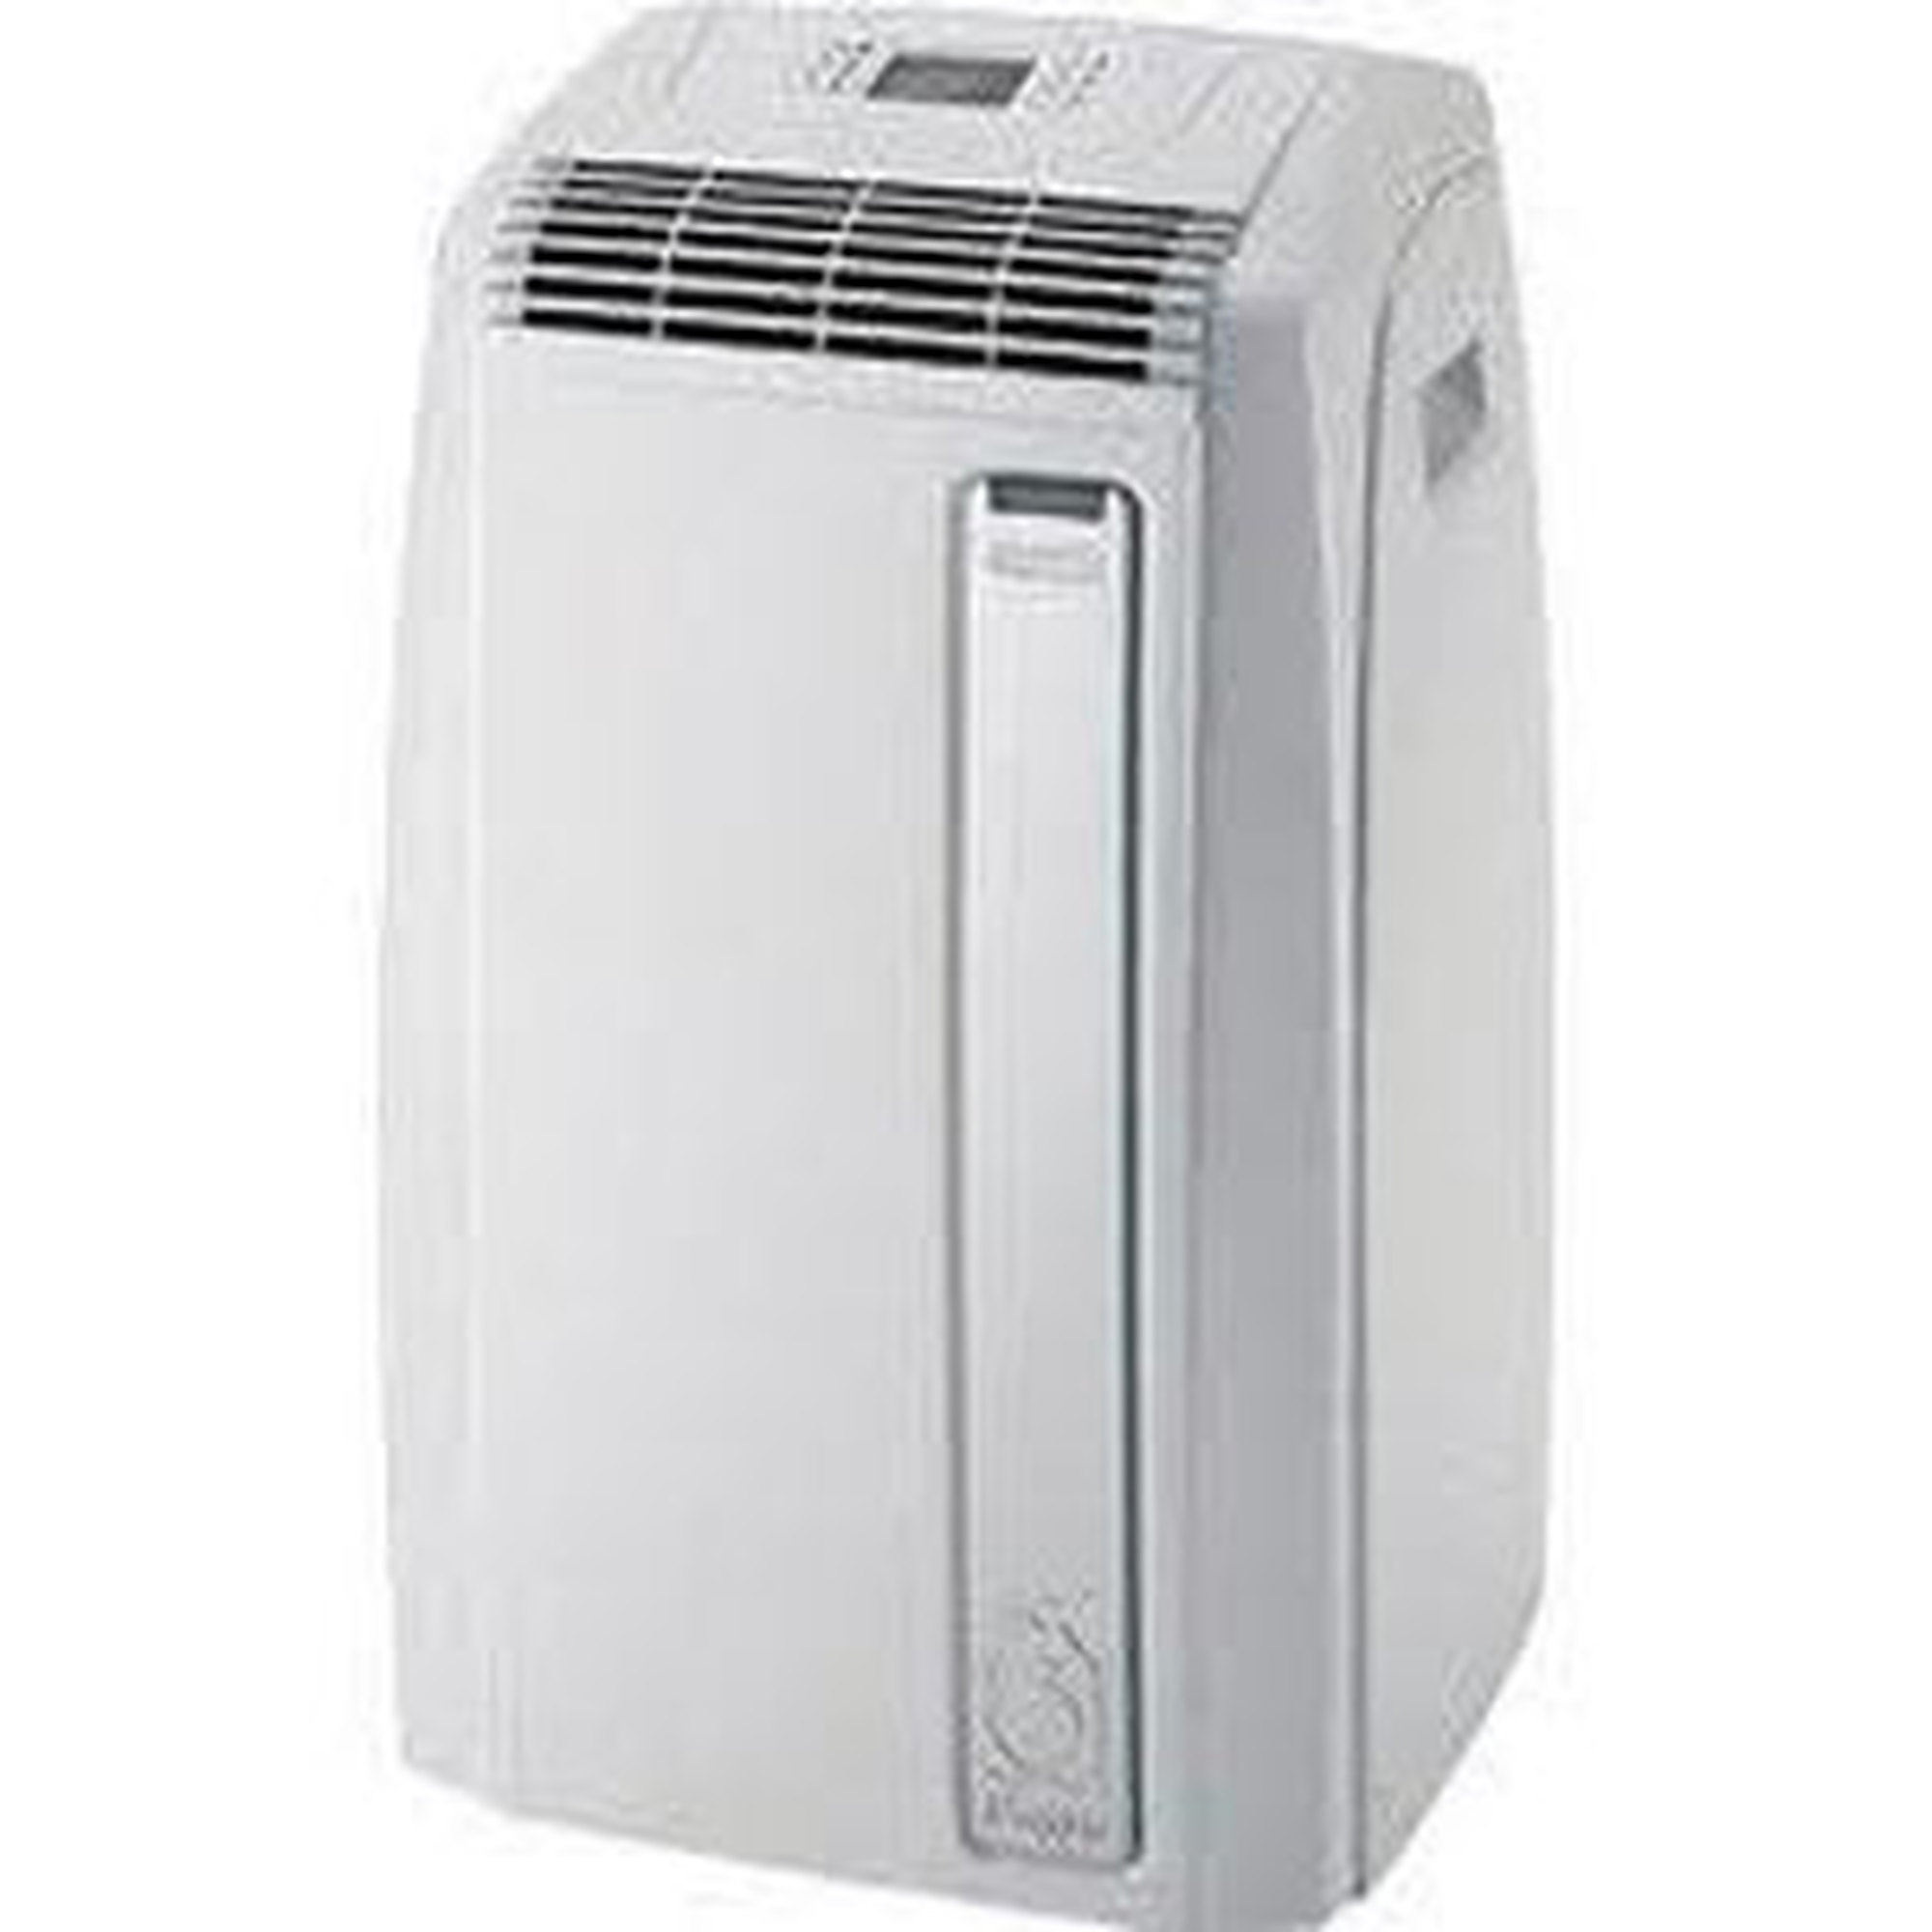 Portable Air Conditioning Units For Rent In Malta Malta